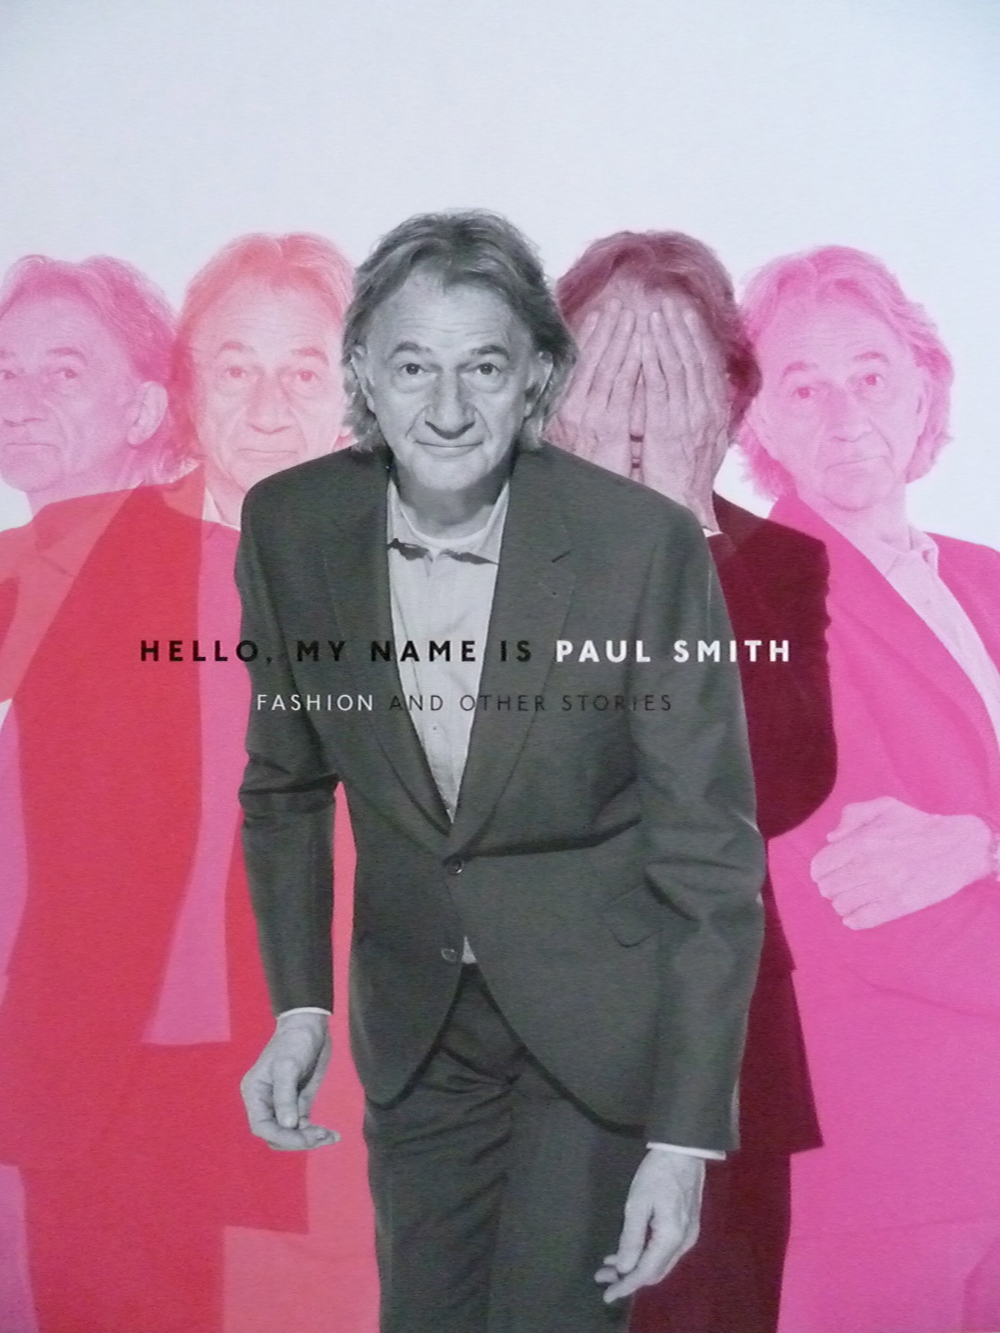 Paul Smith / Hello My Name Is Paul Smith